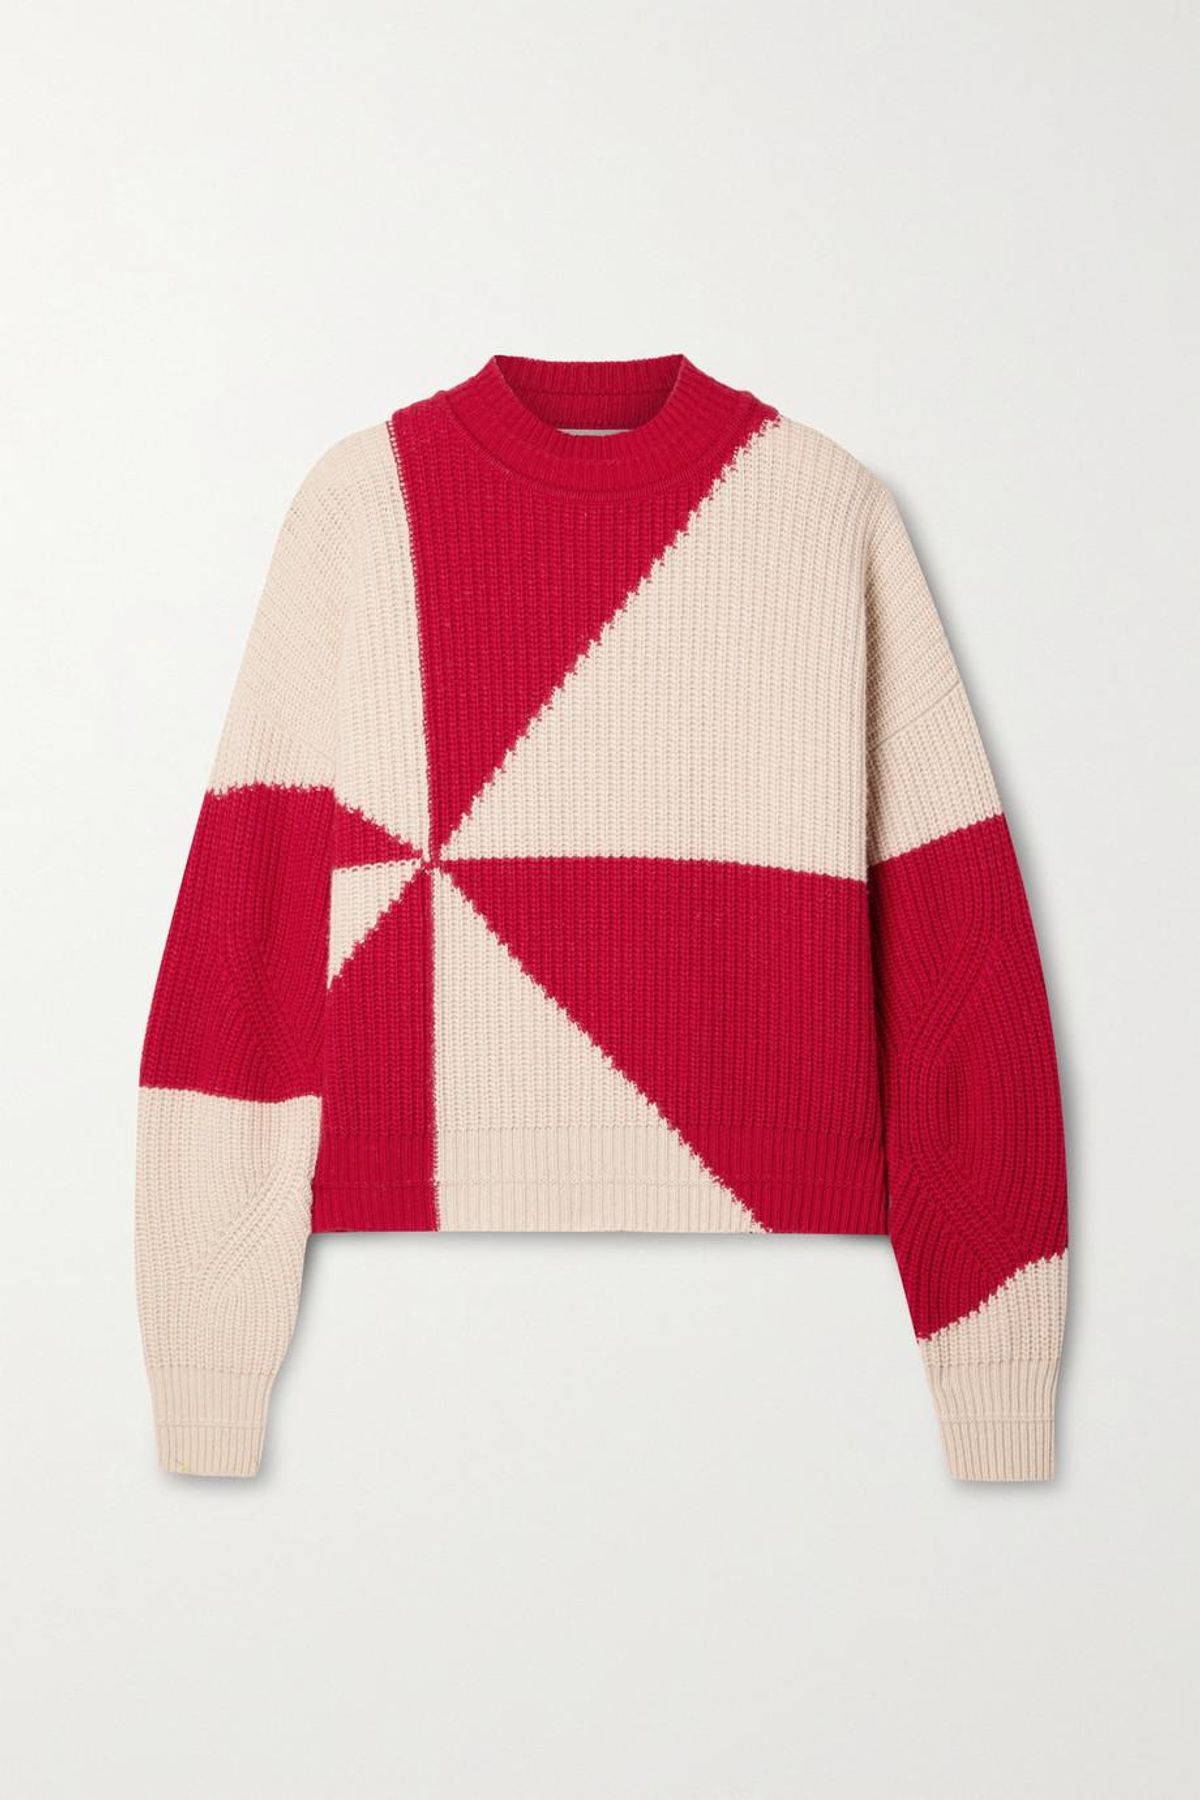 Jules Two-Tone Recycled Ribbed Knit Sweater